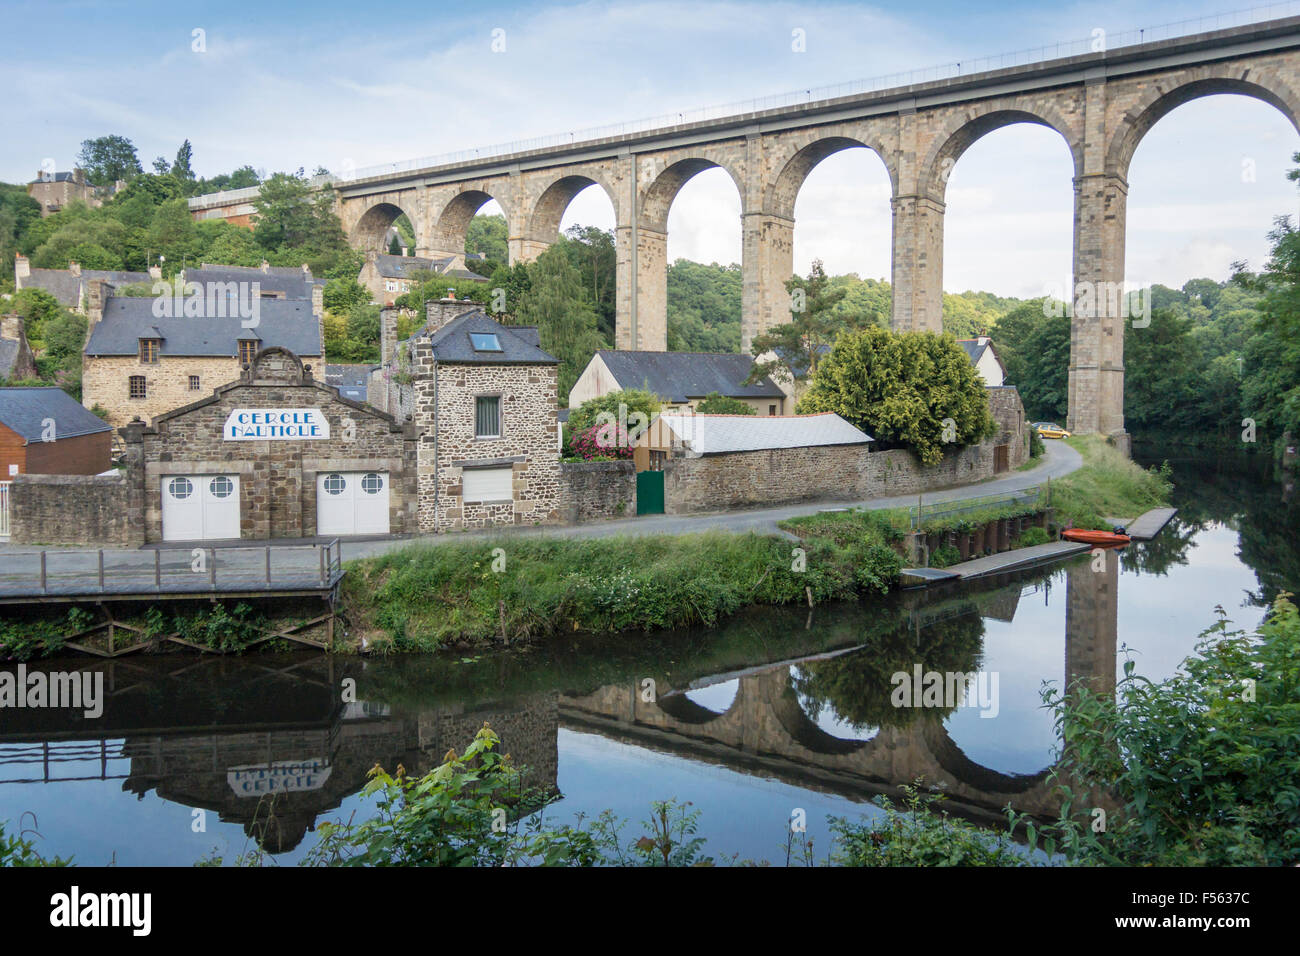 The viaduct at Dinan, Brittany, France, crossing the river Rance Stock Photo